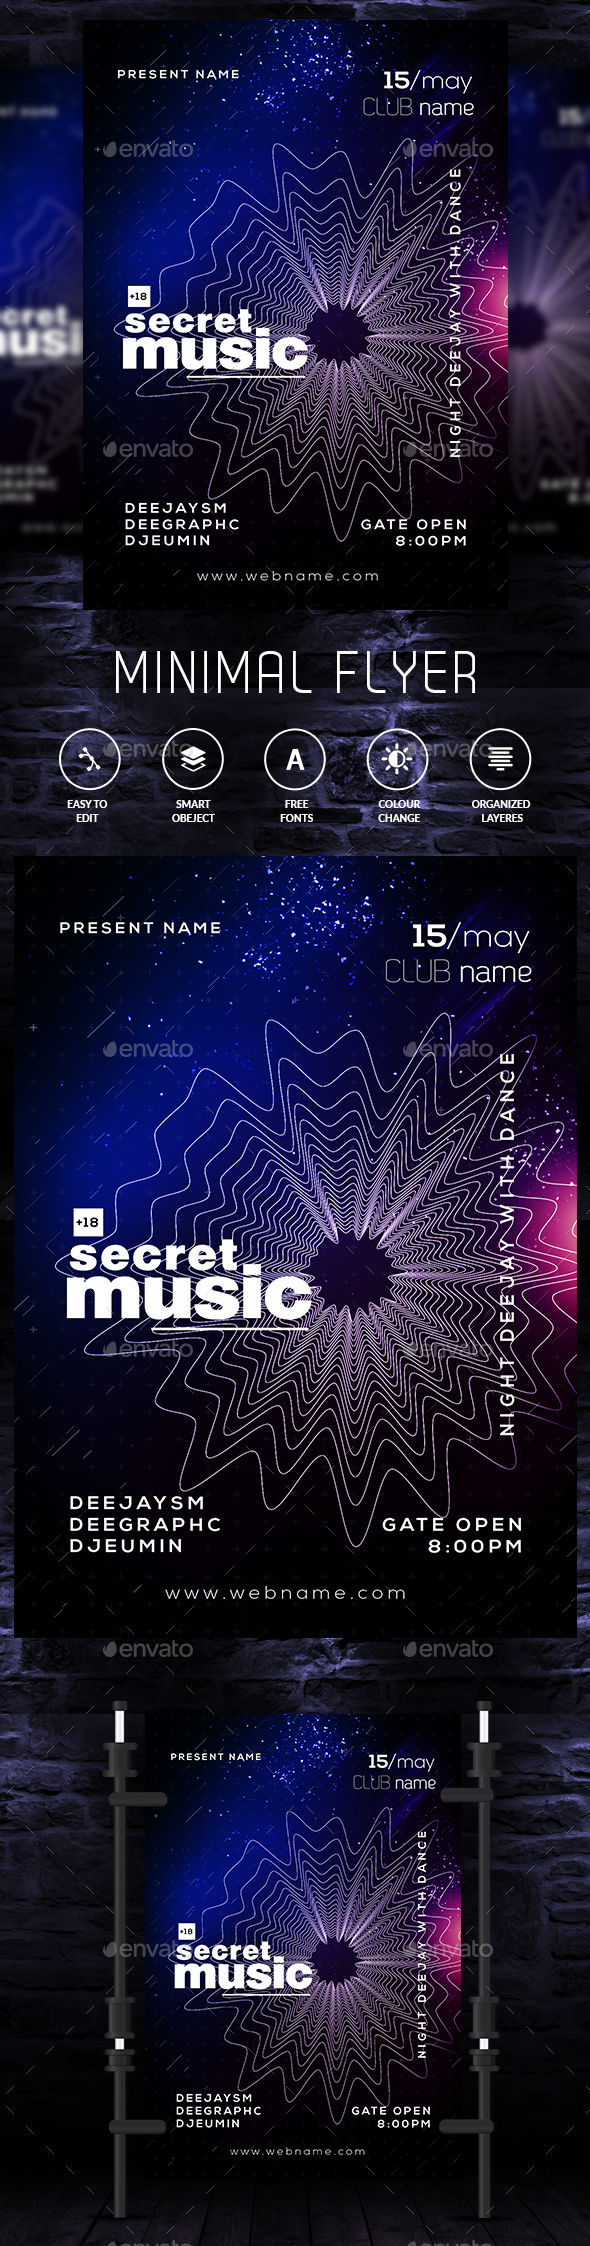 Minimal Music Flyer Template - Clubs & Parties Events